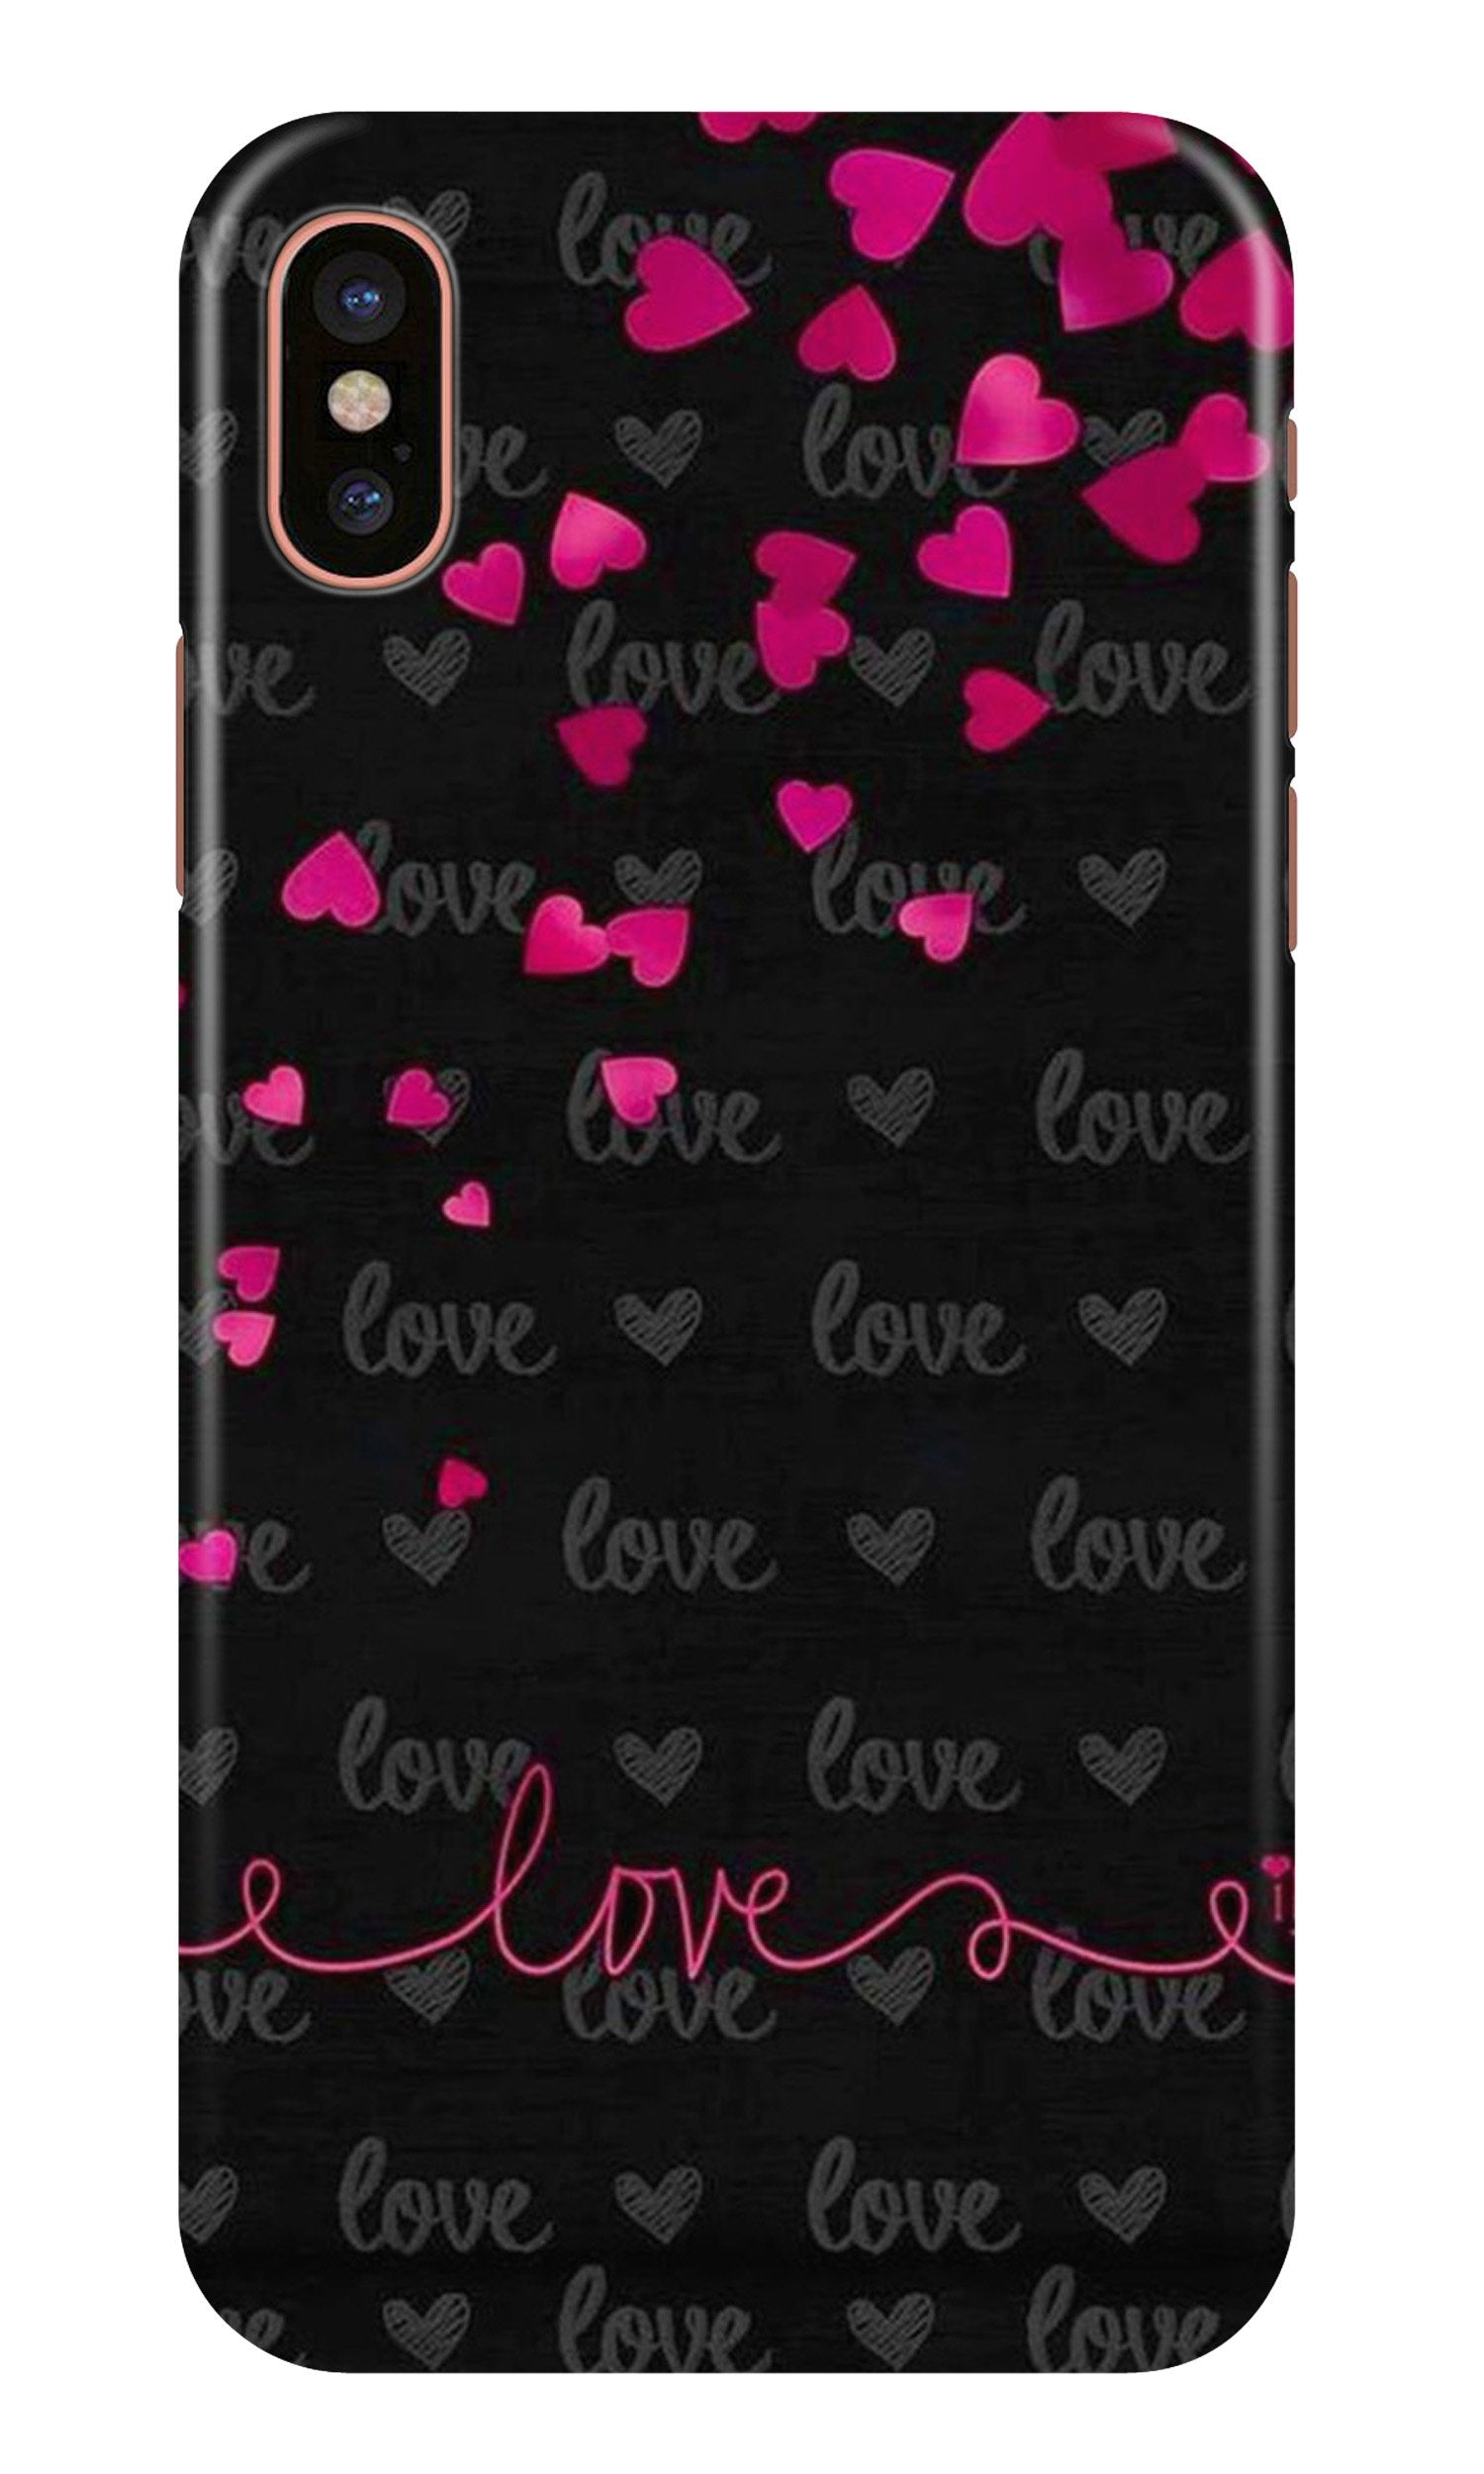 Love in Air Case for iPhone Xr